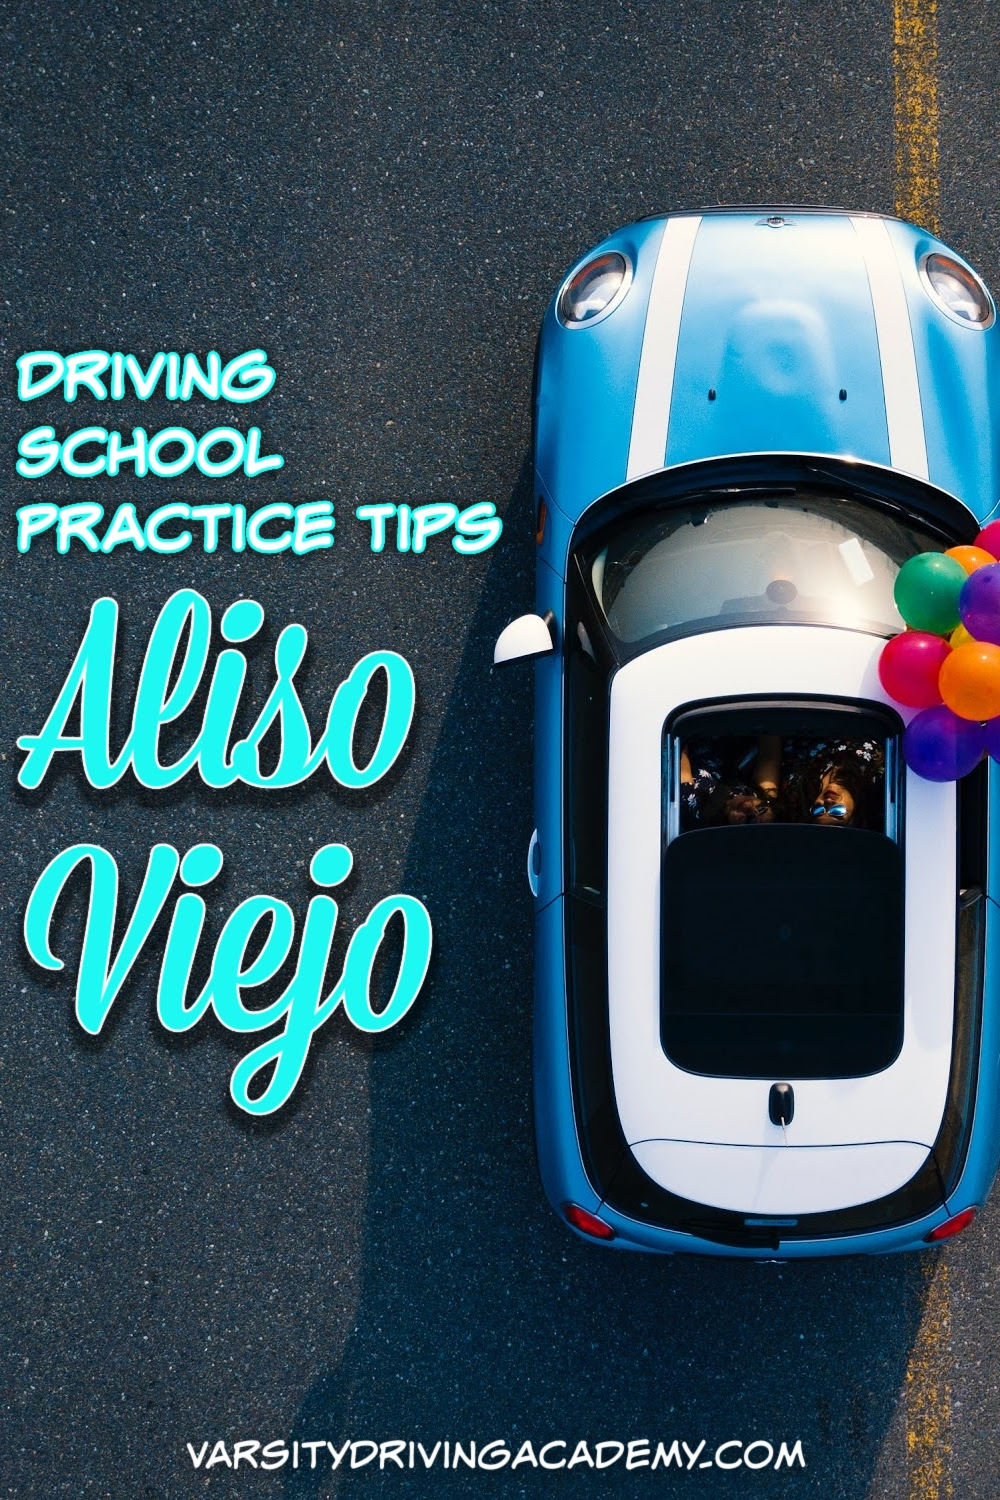 Aliso Viejo driving school practice tips can help you get a feel for driving around in a safe and defensive way.